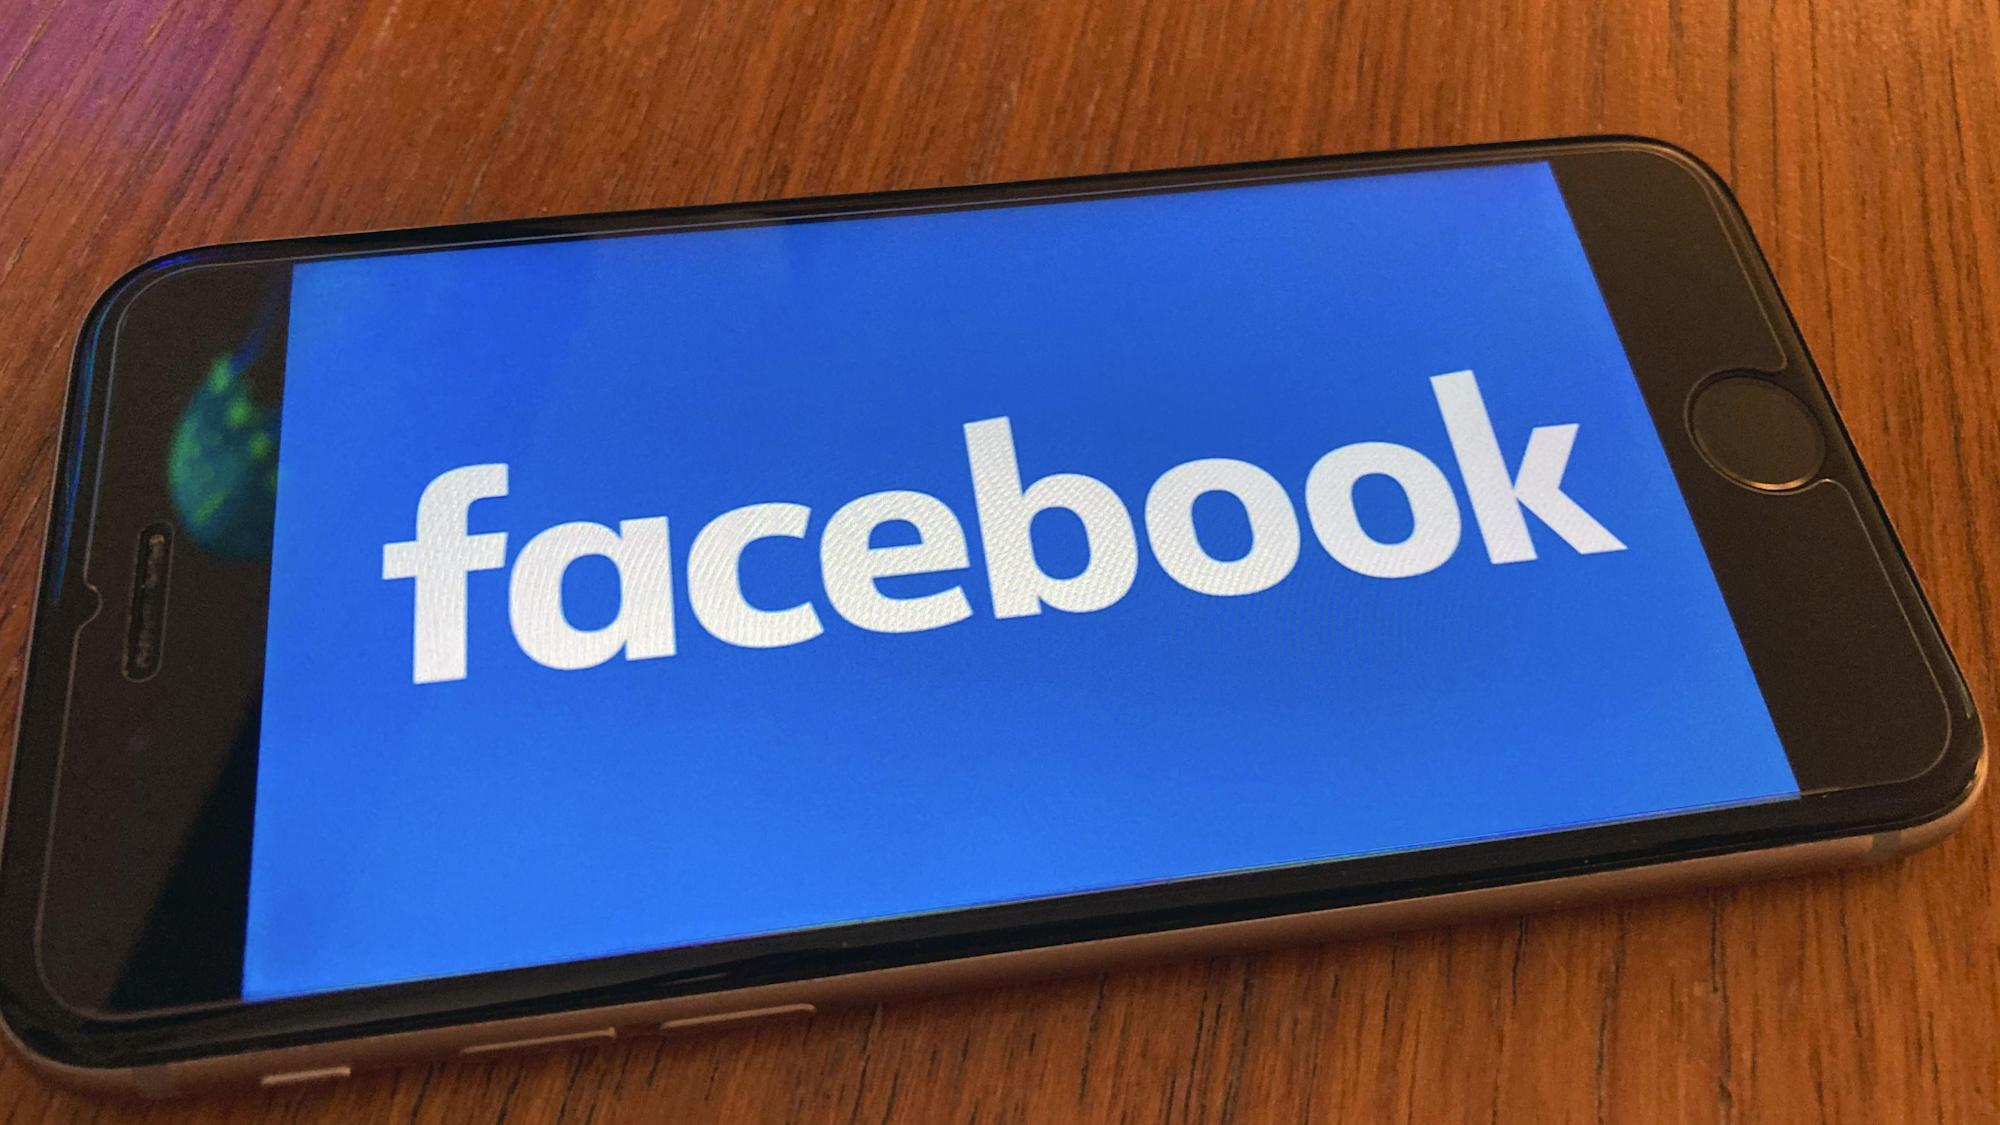 Facebook Launches Indie Music Program for Artists to Distribute Songs Across Social Giant's Apps